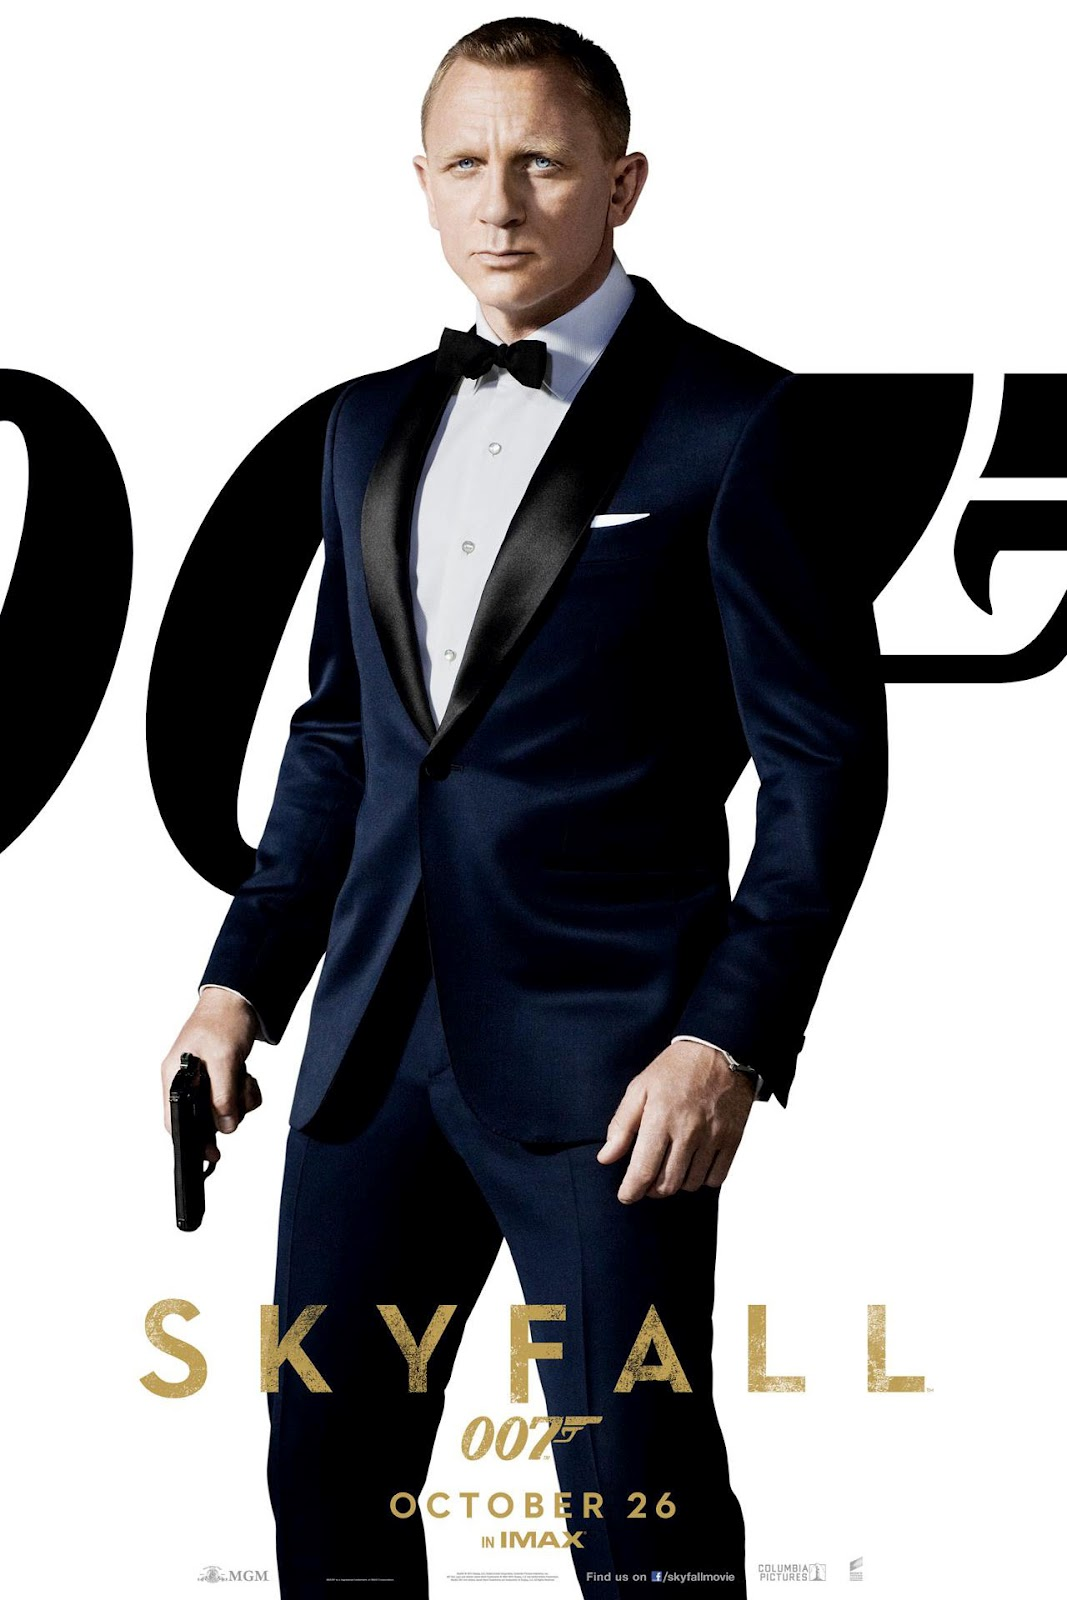 http://3.bp.blogspot.com/-FpGervFefds/UGy-WWbStjI/AAAAAAAAGvM/L505d6fLwW8/s1600/daniel-craig-james-bond-007-skyfall-tom-ford-tuxedo-dinner-suit-midnight-blue-black-shawl-satin-silk-lapel-skinny-batwing-bow-tie.jpg